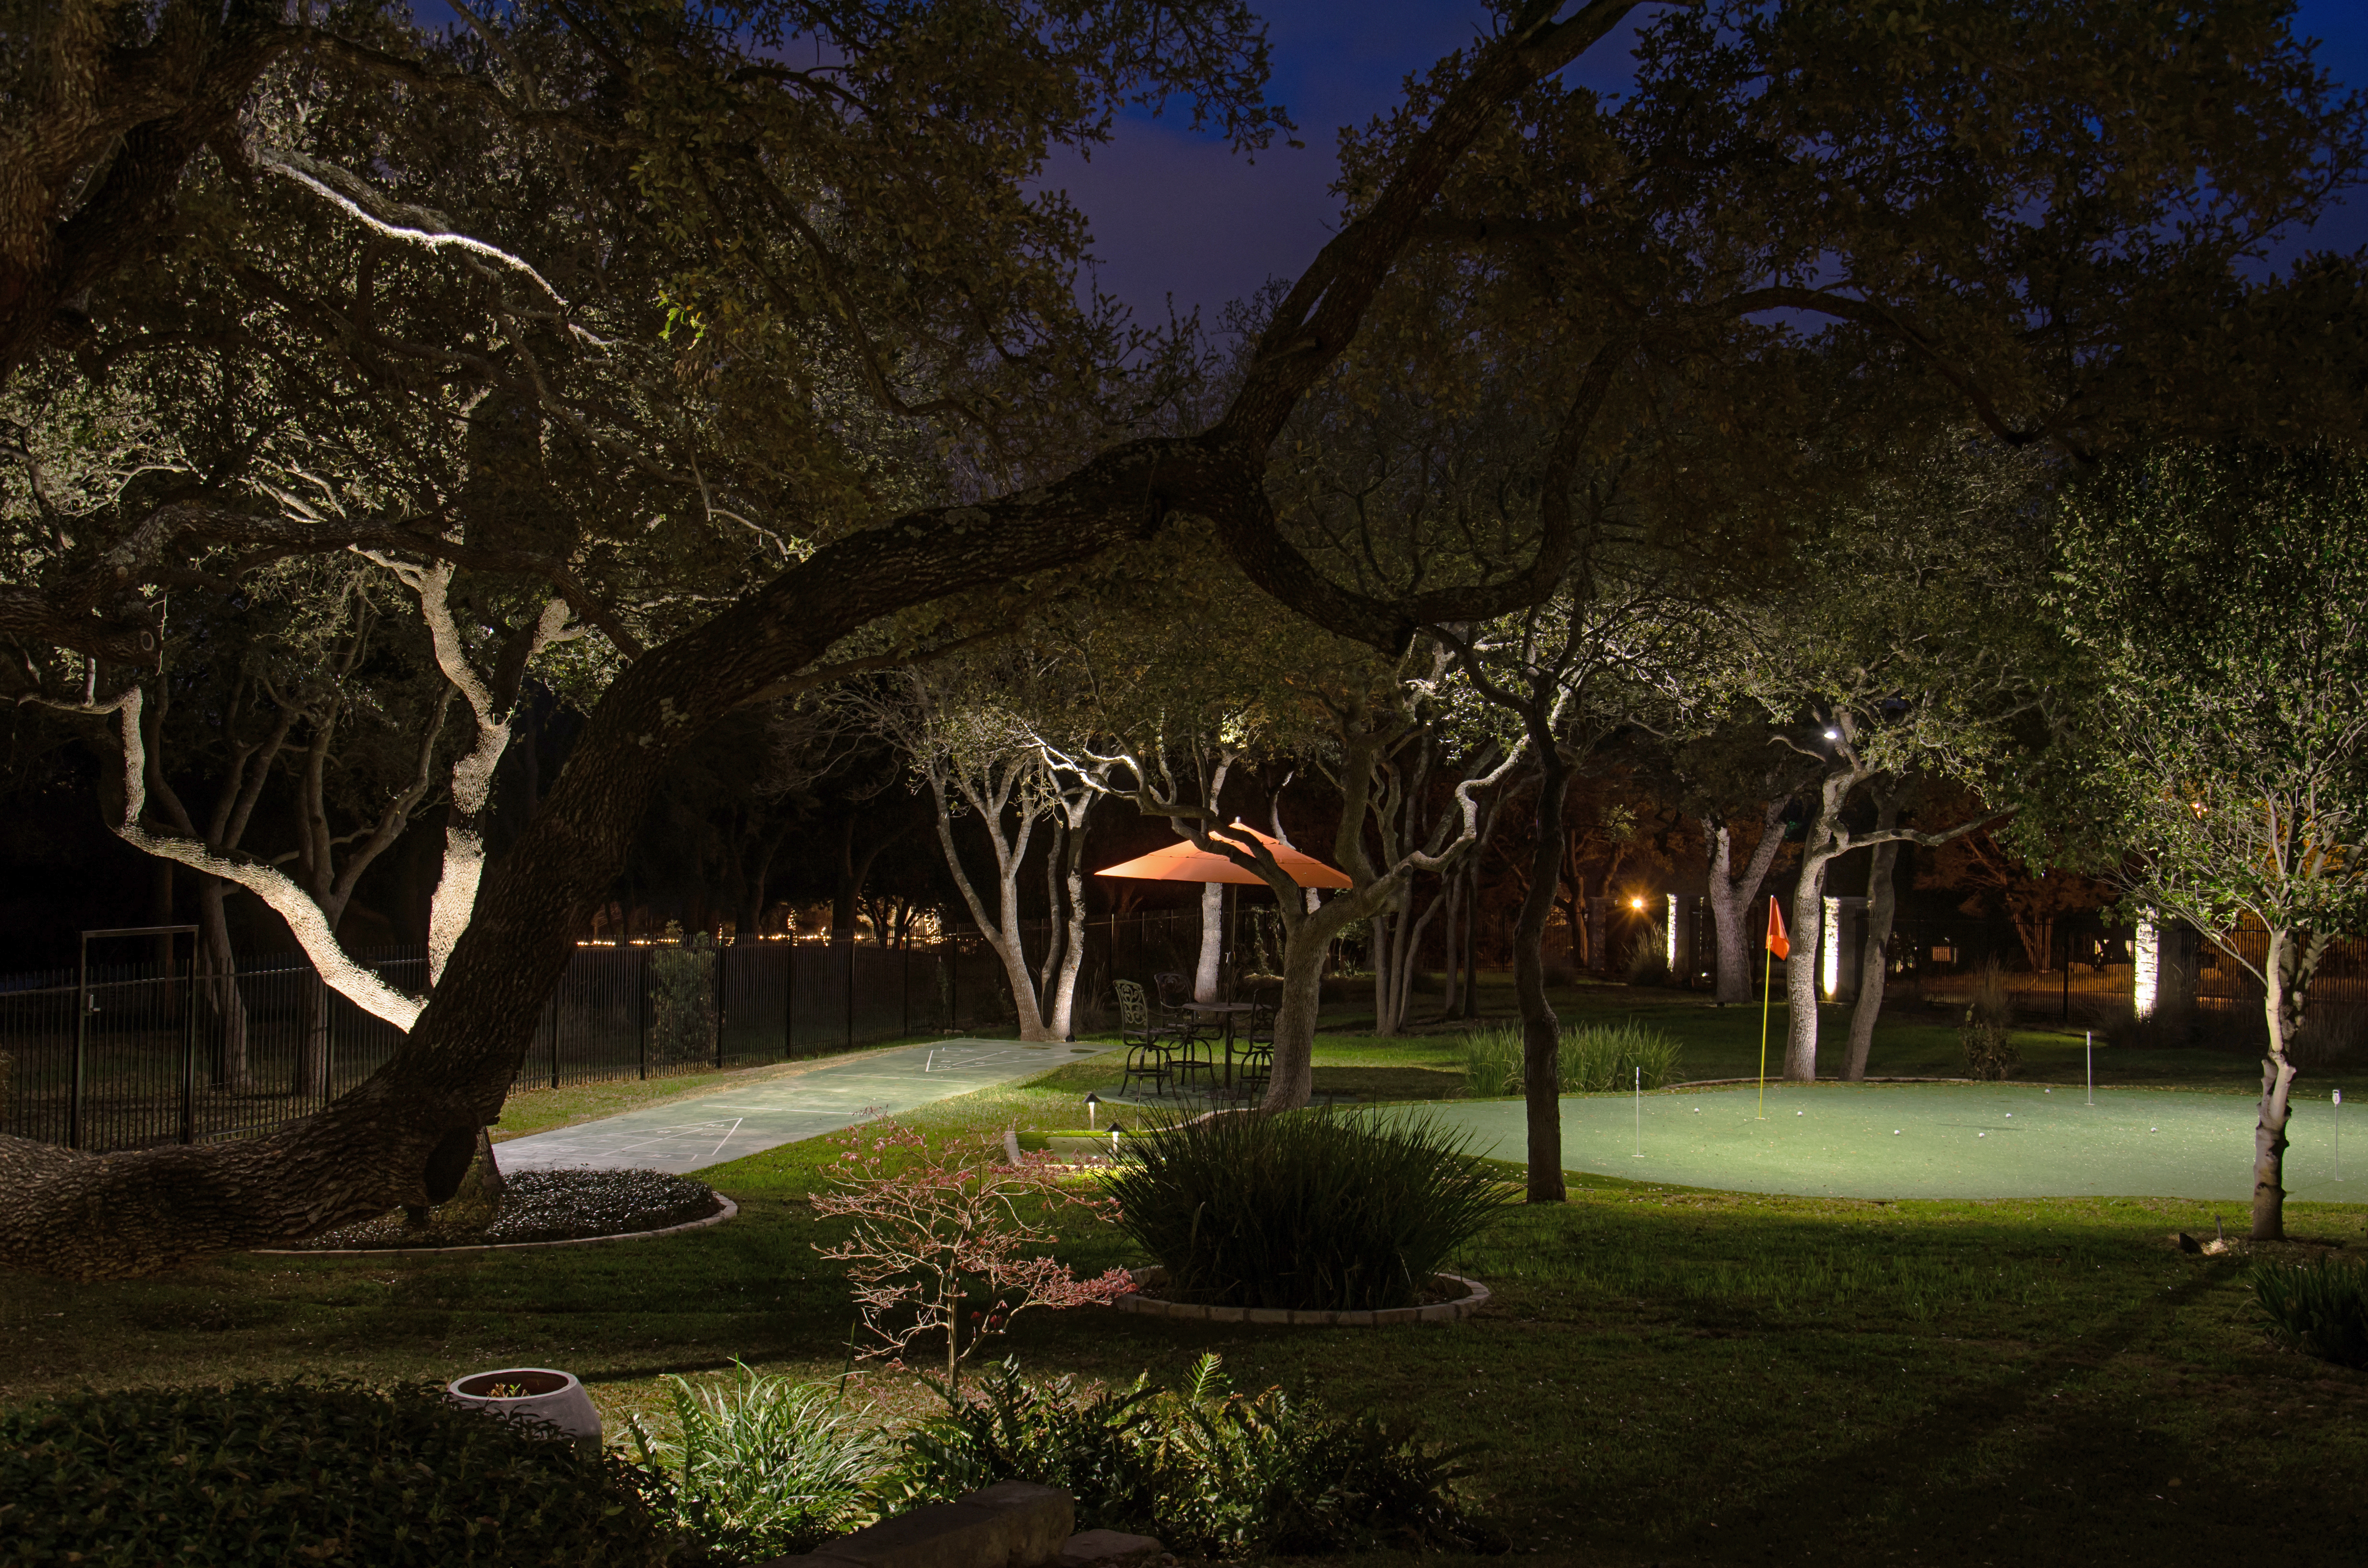 Landscape Lighting in Austin and the surrounding areas. By adding, outdoor lights to this backyard space, the homeowners can now enjoy their outdoor living areas